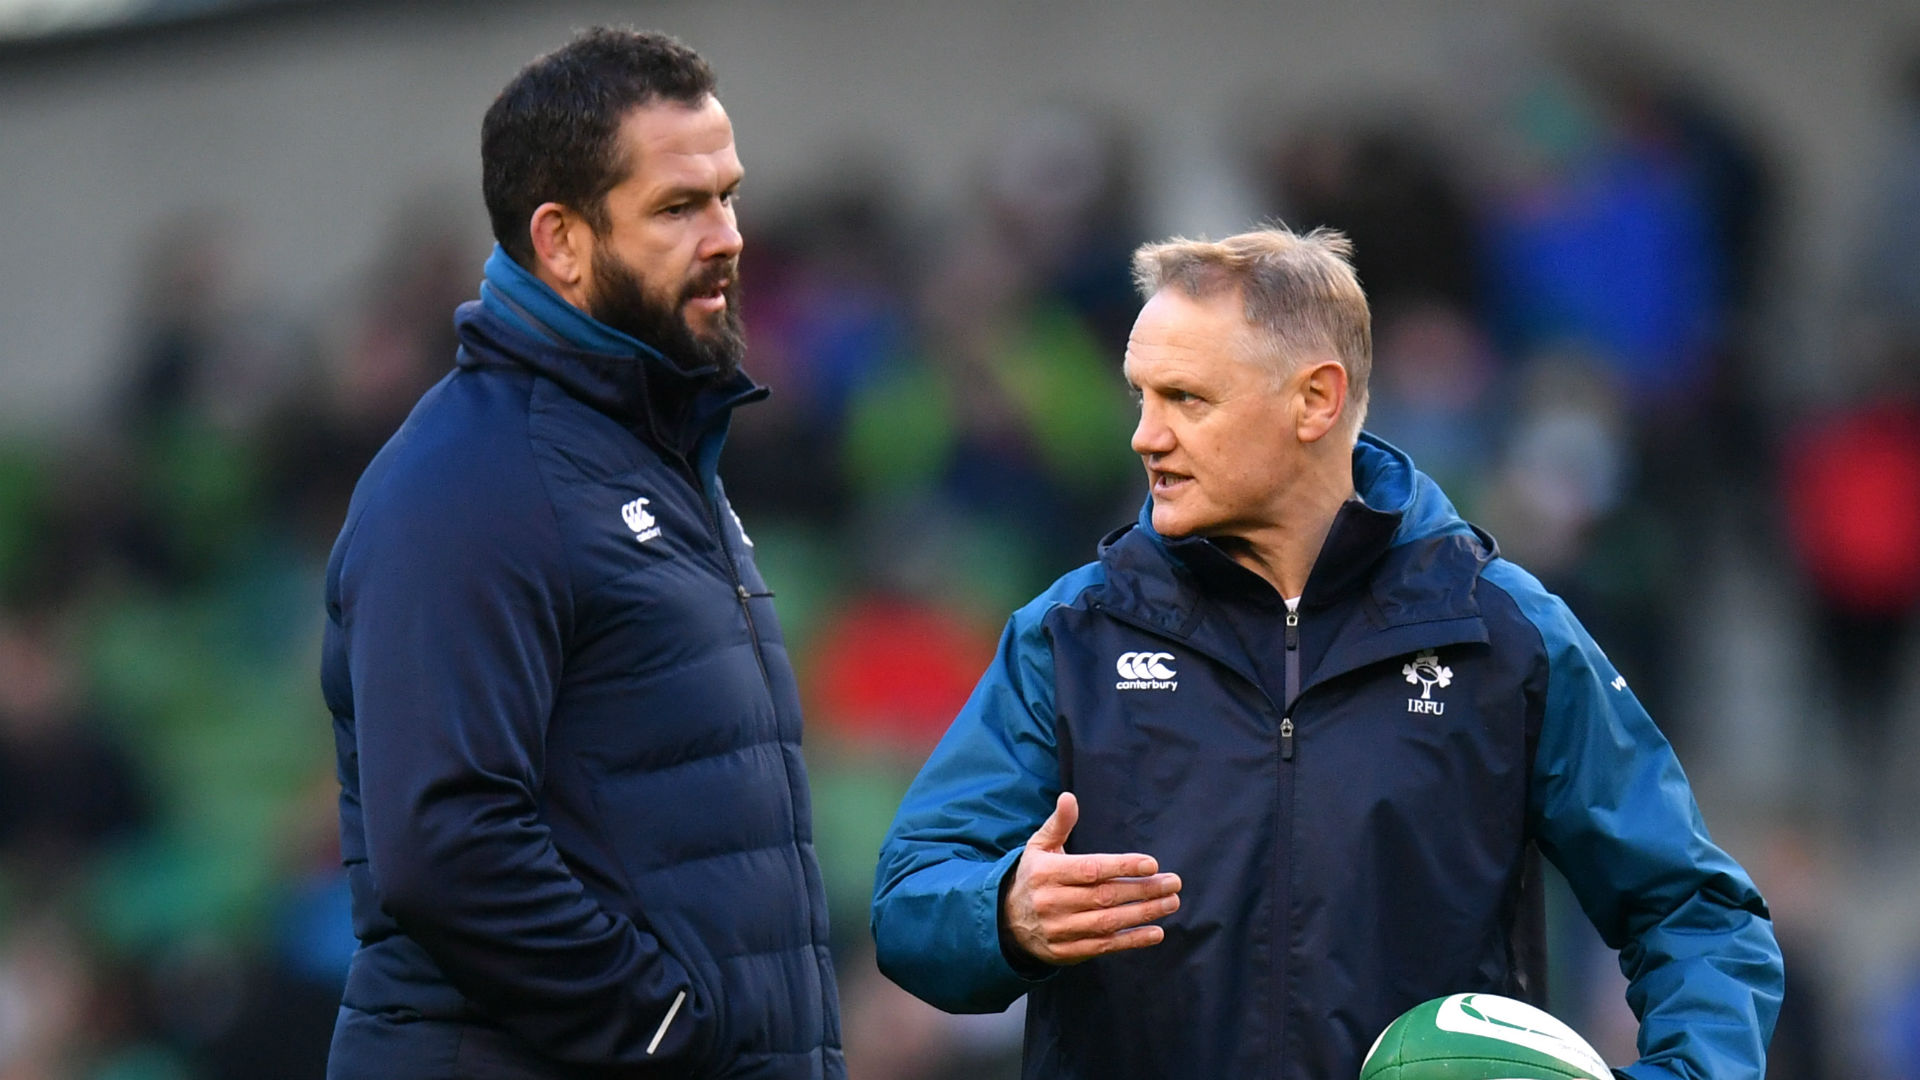 Former Ireland centre Brian O'Driscoll has heaped praise on coach Joe Schmidt and says Andy Farrell is the right man to replace him.